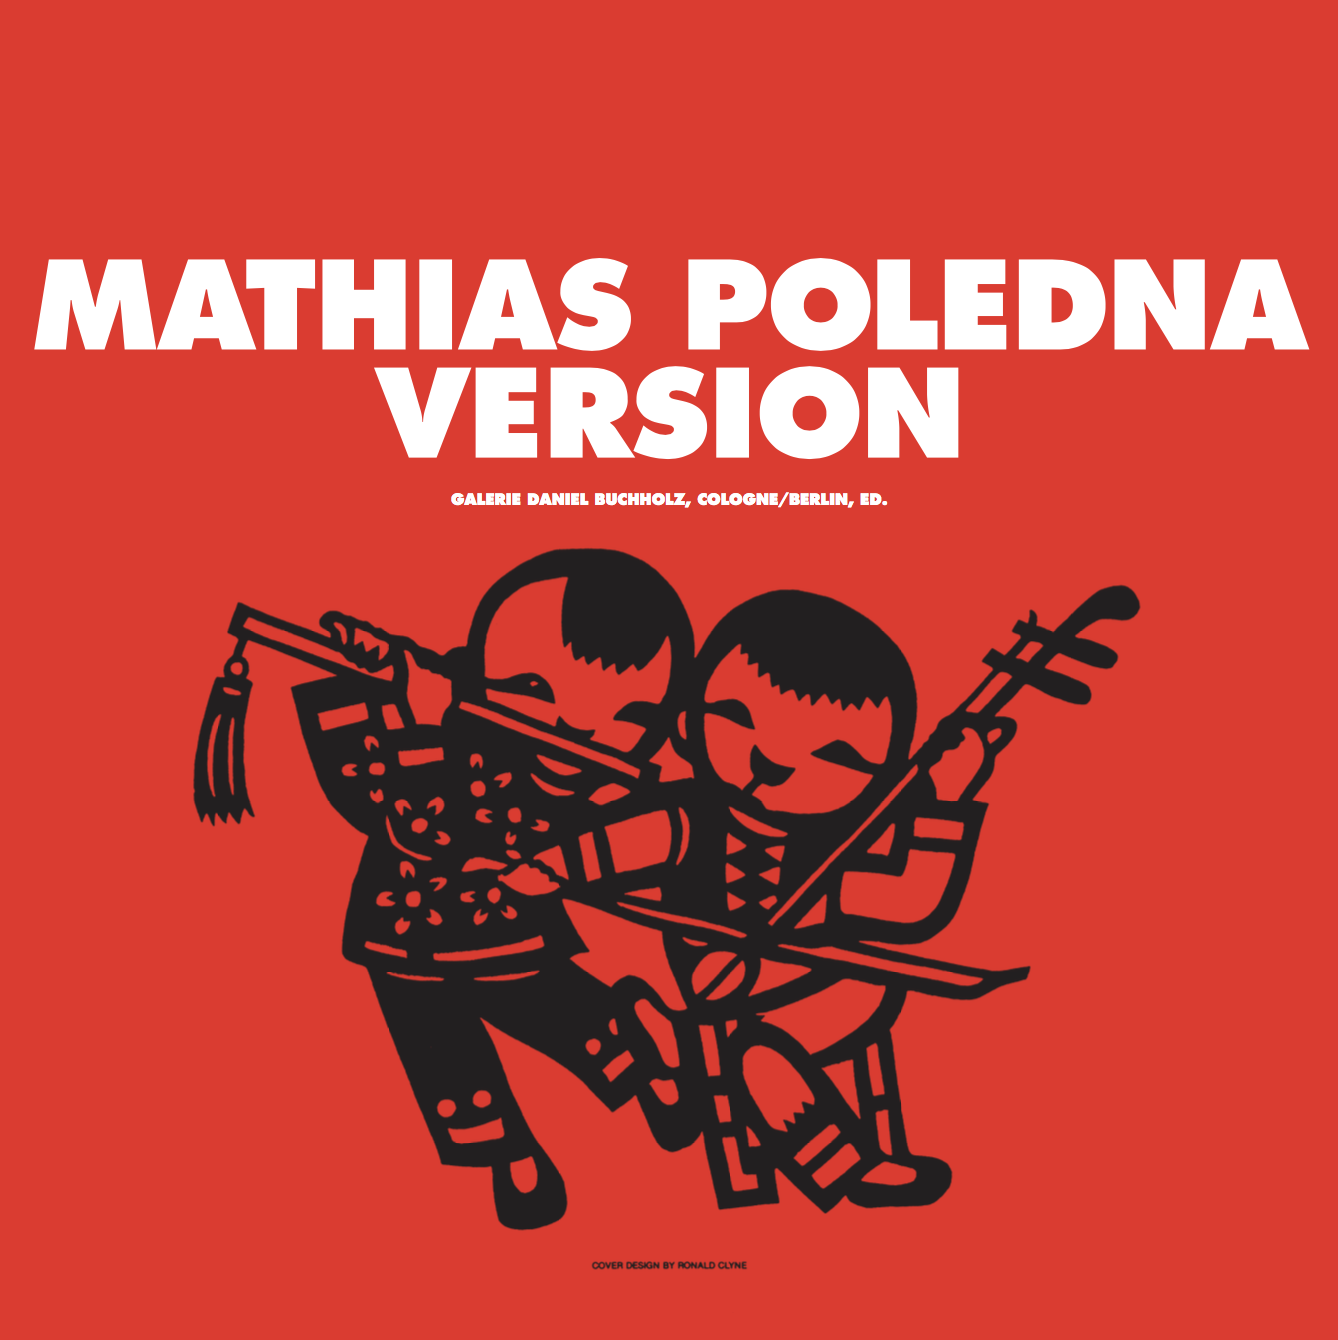 "Mathias Poledna – ""Version"" 2010, 52 p., fully illustrated, Owrps., with supplement. booklet, 31,4 x 31,4 cm / 25,4 x 25,4 cm Edition 800 Text by Juliane Rebentisch in English and German Euro 25,- – This new publication documents Mathias Poledna's 2004 film installation ""Version"". The publication features a monographic essay by Juliane Rebentisch on the work and its companion piece, ""Sufferers' Version"". Conceived and designed by Mathias Poledna the publication takes on the form of a double LP-sleeve with an insert of large-scale plates and a supplementary booklet. The cover motive is a tribute to Ronald Clyne, the seminal designer of album sleeves for the US-label Folkways Records. A numbered edition of 10+1 is signed by the artist and contains a 12"" dubplate especially produced for this occasion."